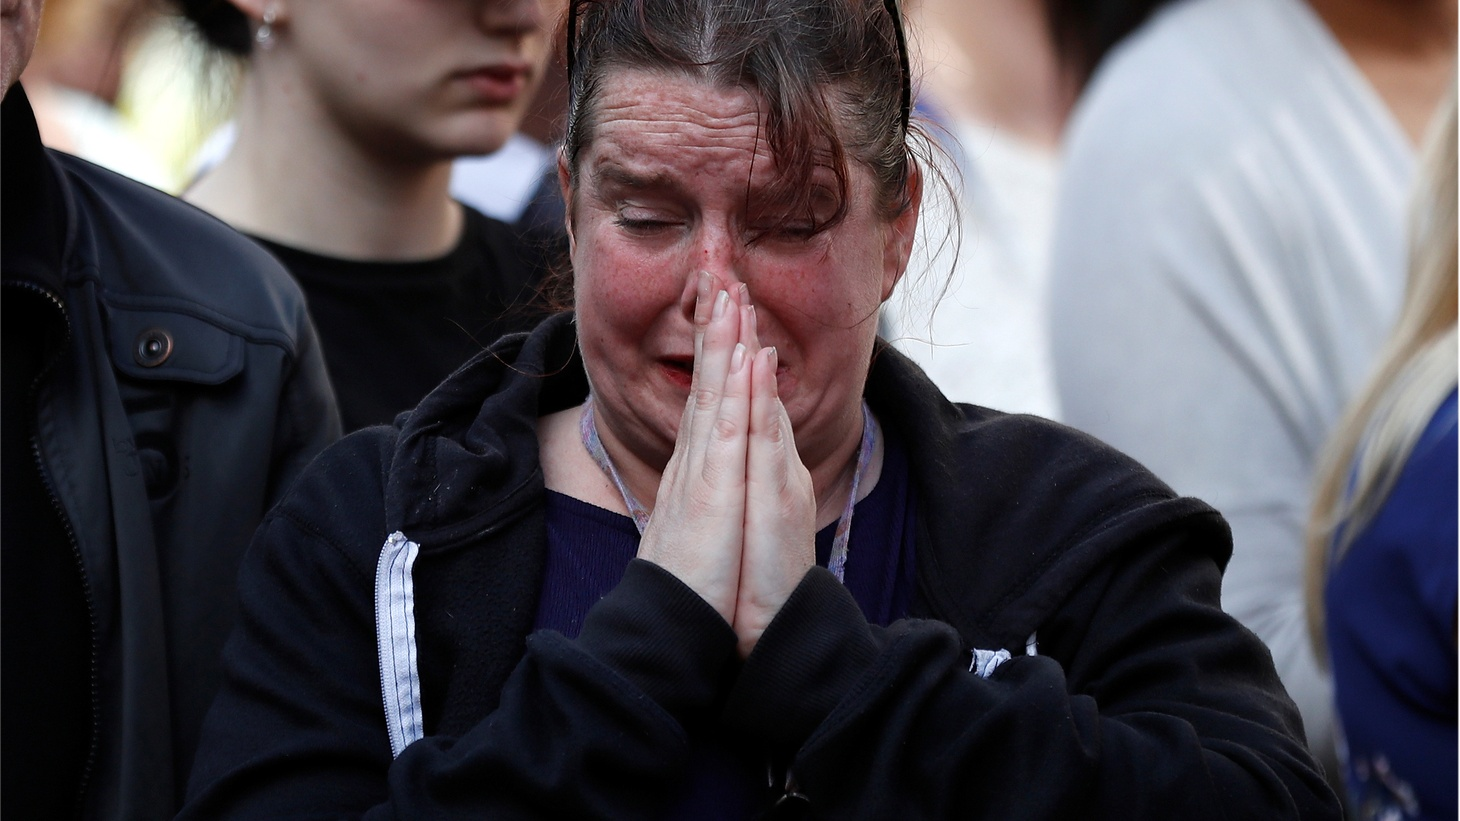 ISIS has claimed responsibility for the terrorist bombing in Manchester that killed 22 people. Also LA has thousands of rehab centers and unlicensed sober living homes. But some of these rehab centers are bilking insurers and taxpayers out of hundreds of millions of dollars, while doing little to treat those desperate for help.